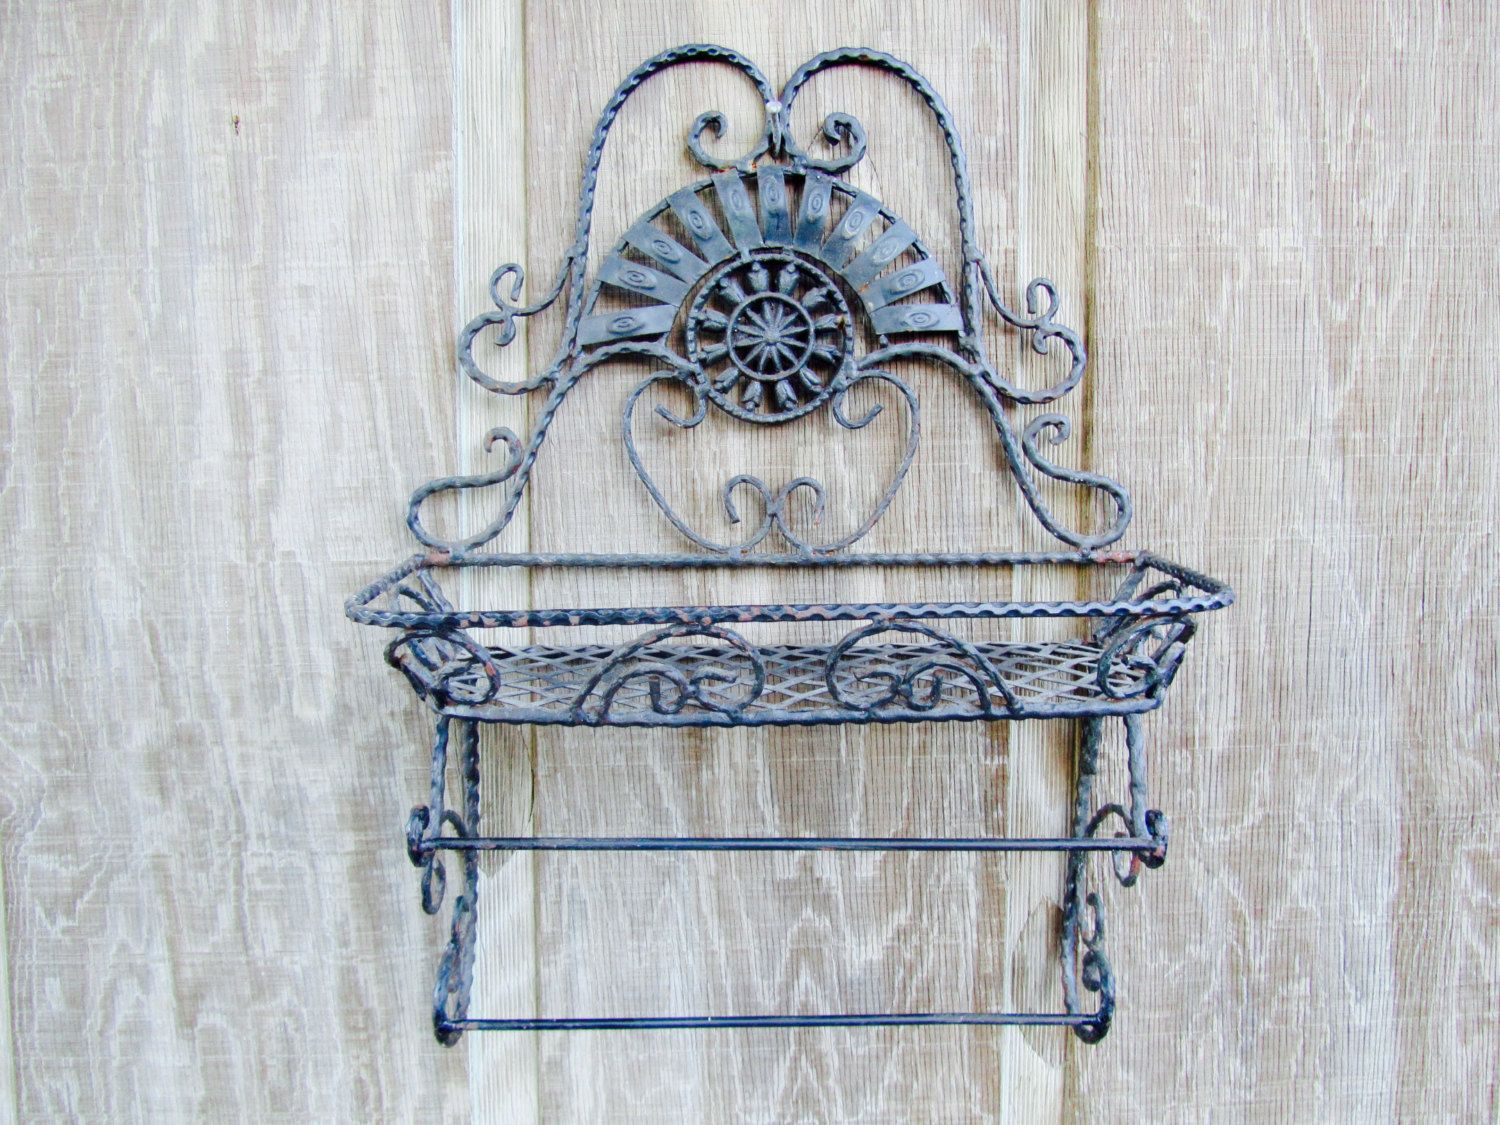 Shabby Chic Wall Decor Vintage Shelf Metal Shelfwrought Iron Shelfshabby Chic Decor